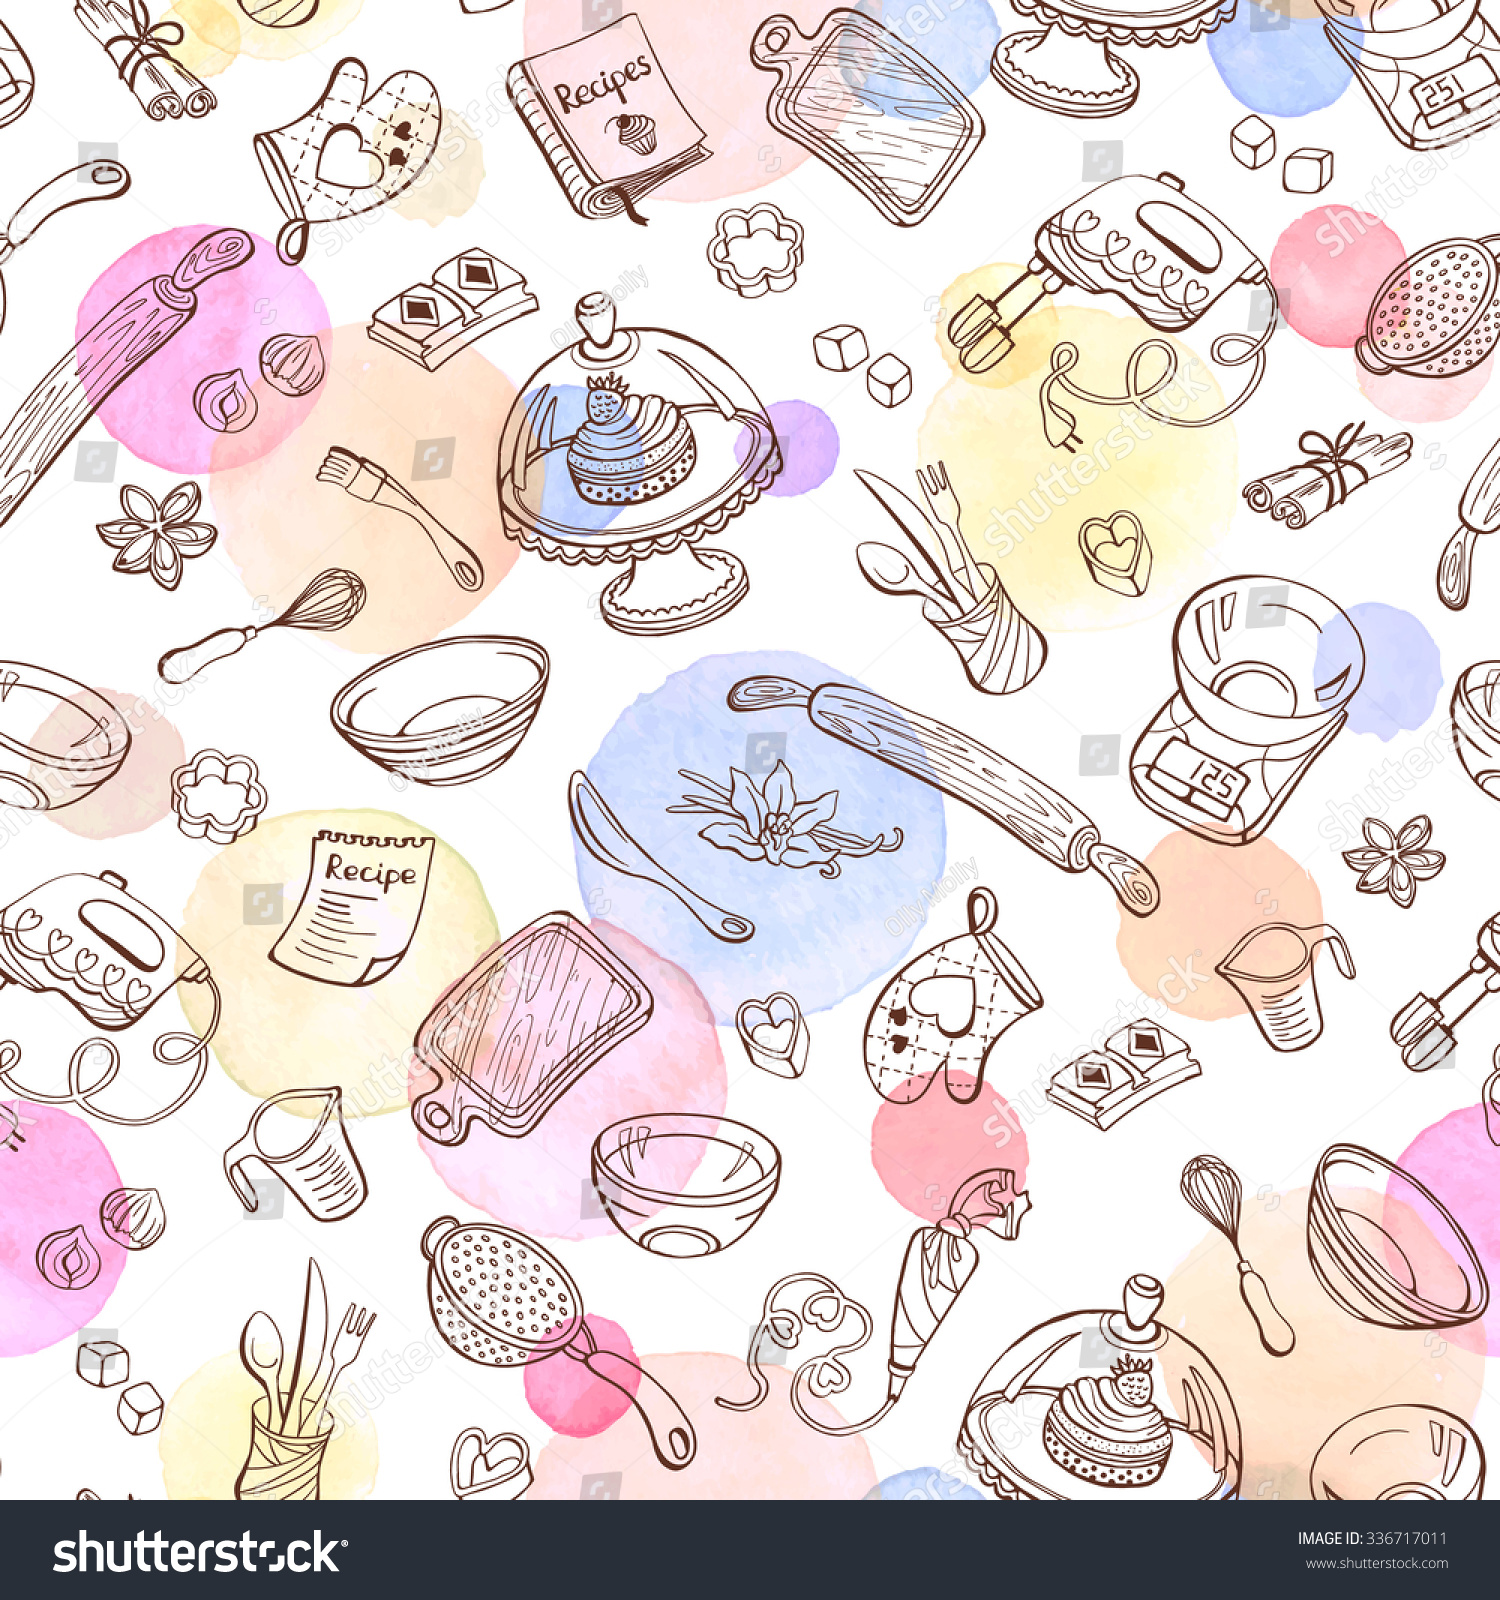 baking doodle background vector seamless pattern stock